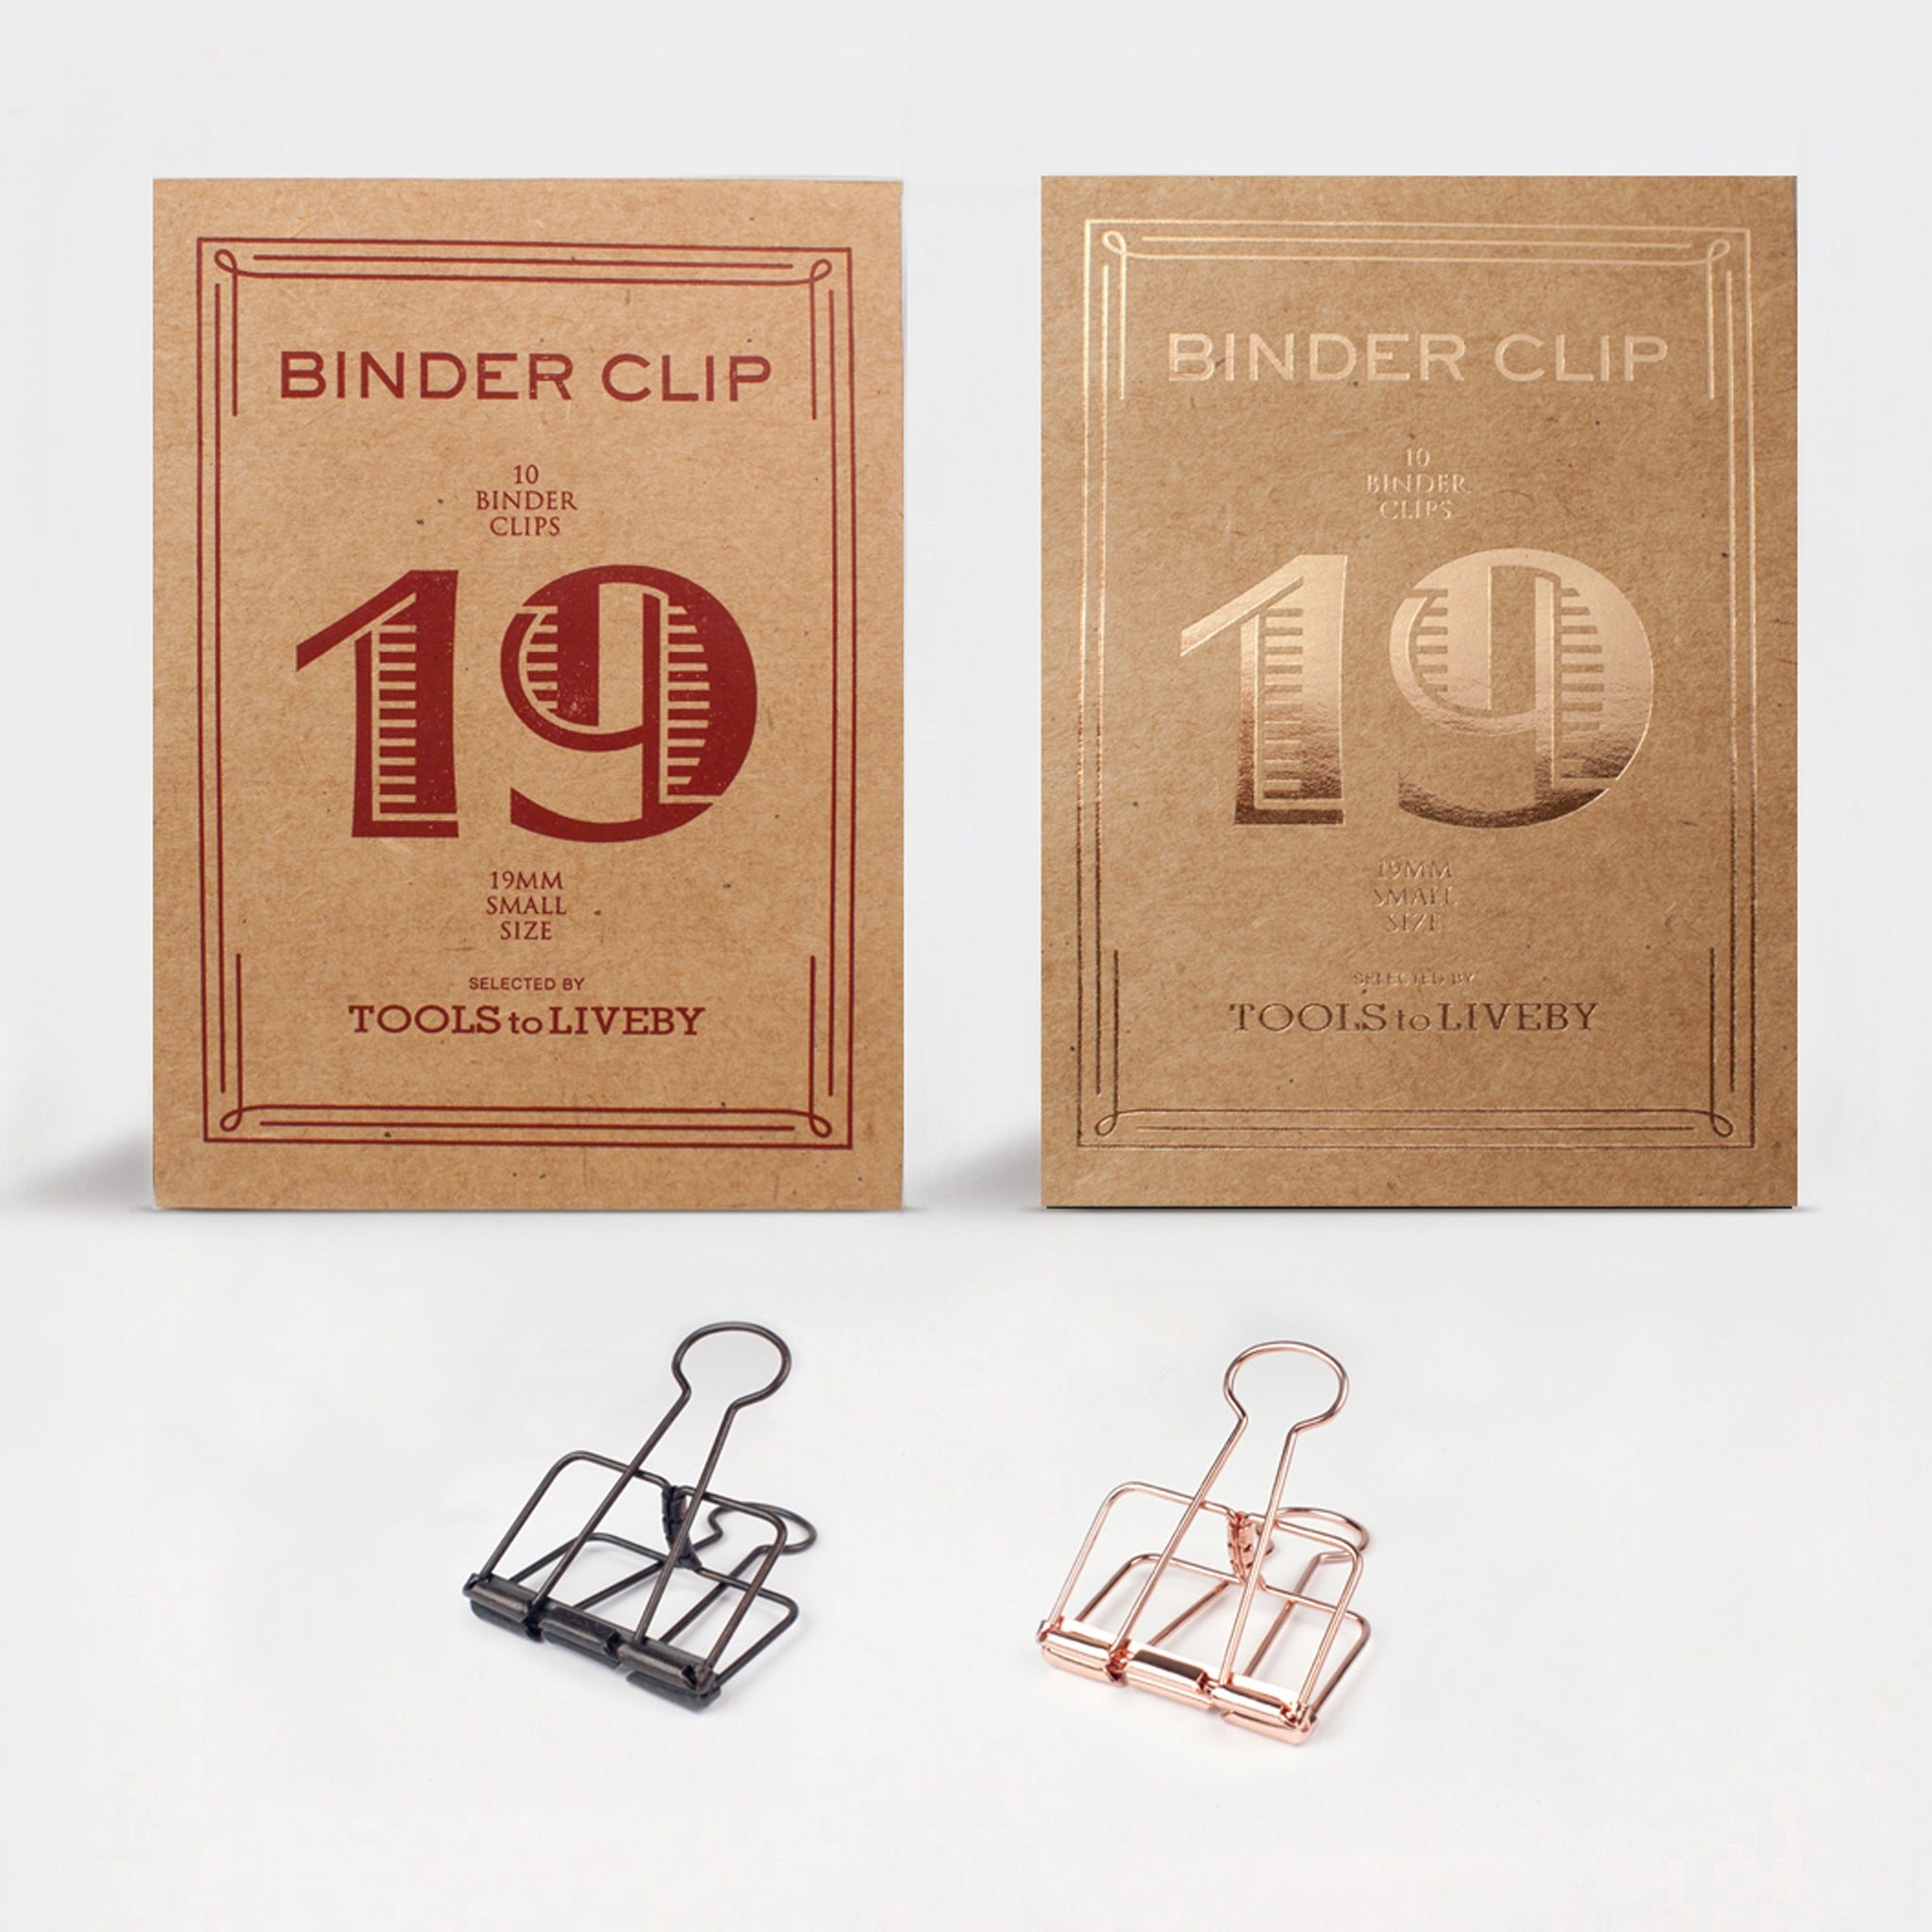 Binder Clips — Small